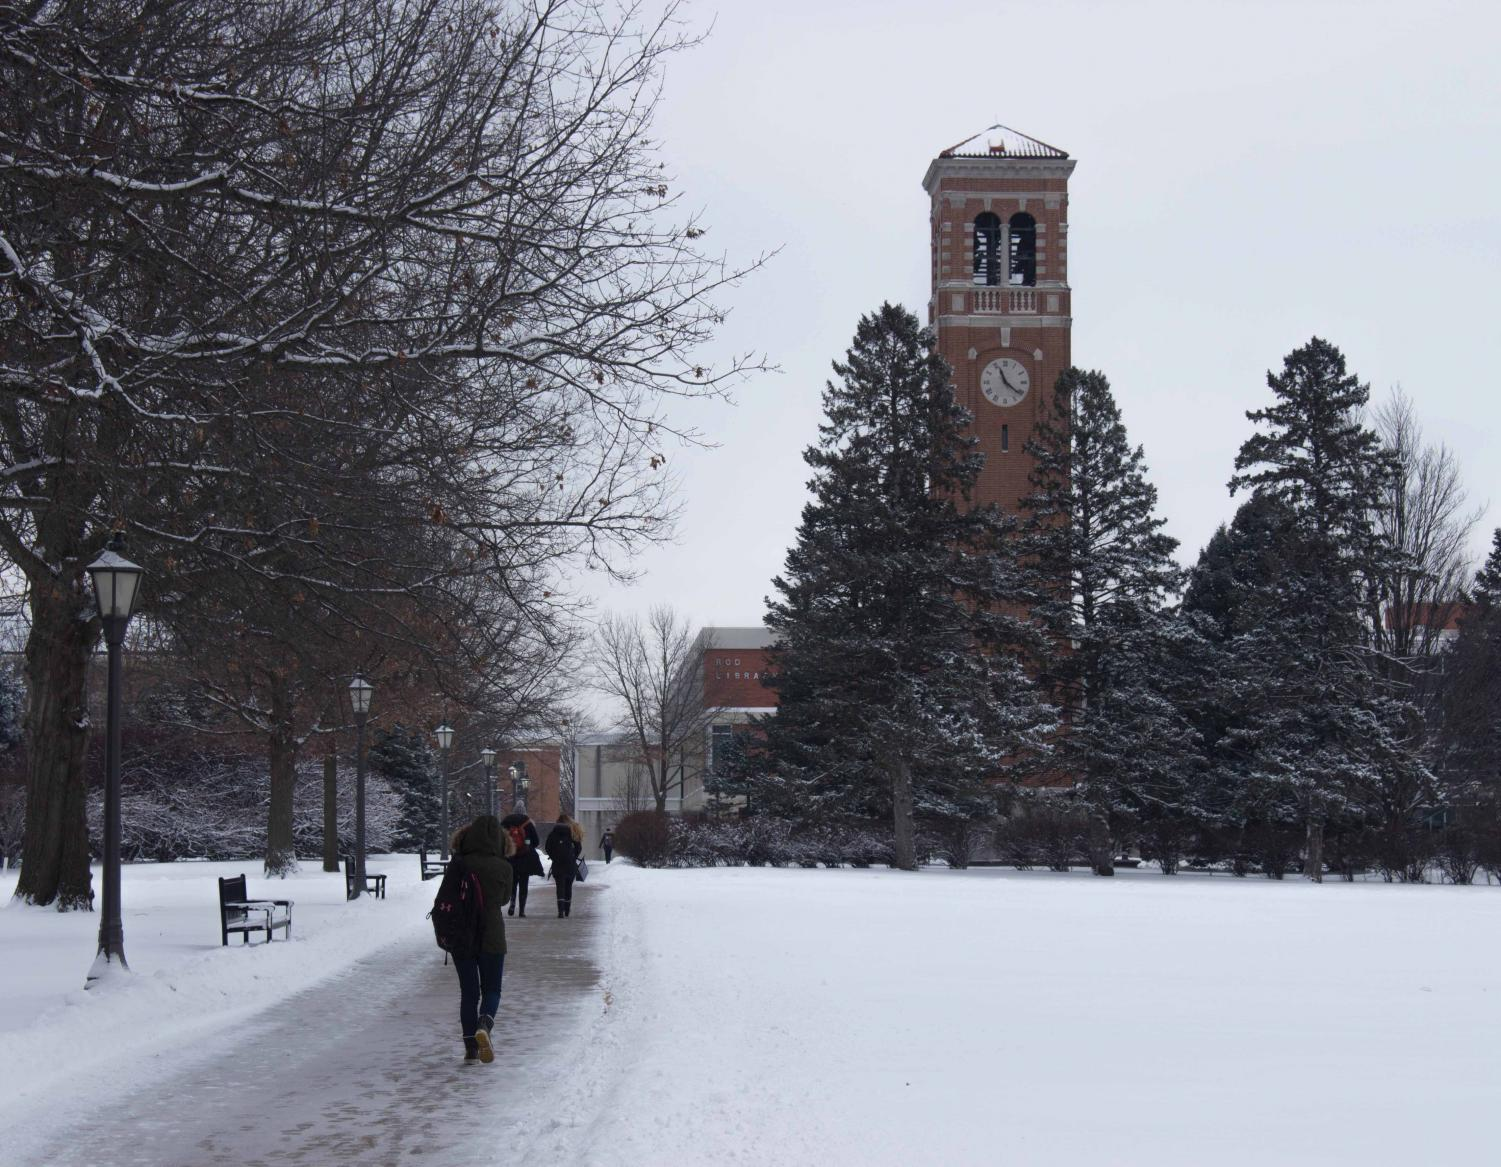 Political communication major Hannah Gregor pens a Letter to the Editor discussing the University's weather cancelation policy and the potential impact it might have on lower-income students and students with disabilities.